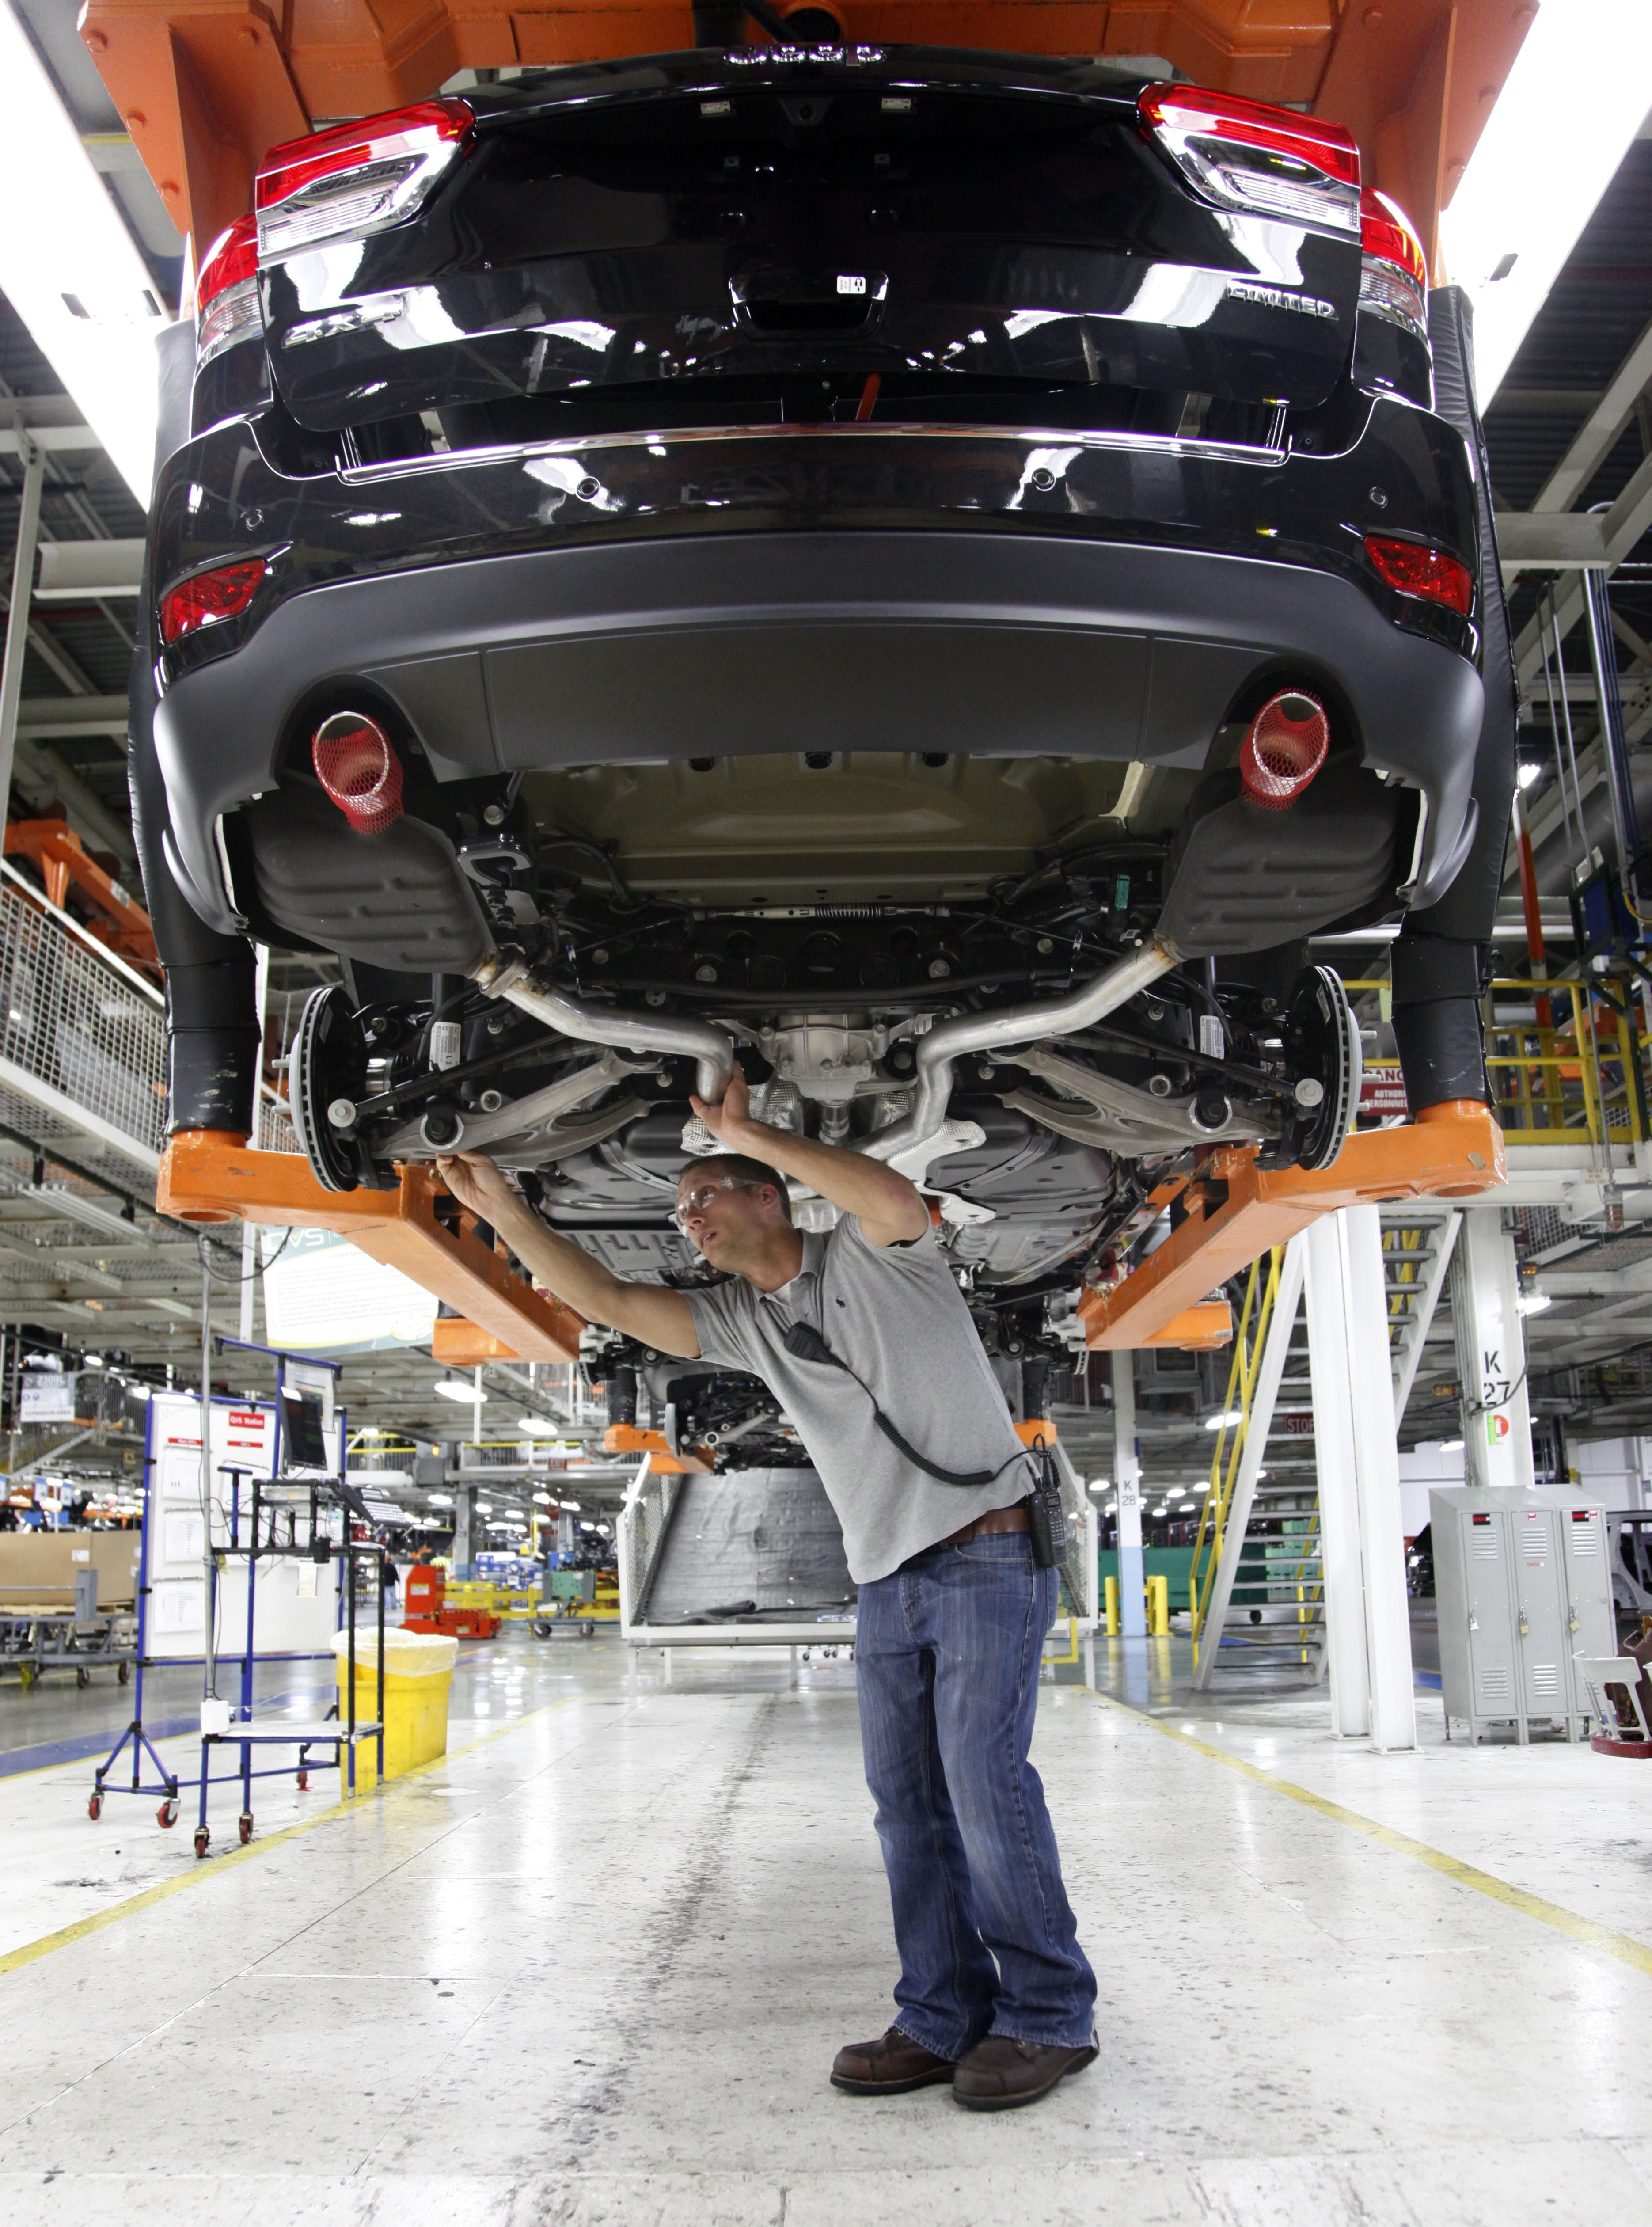 U.S. Carmakers Are Riding High, But Detroit May Not Feel It